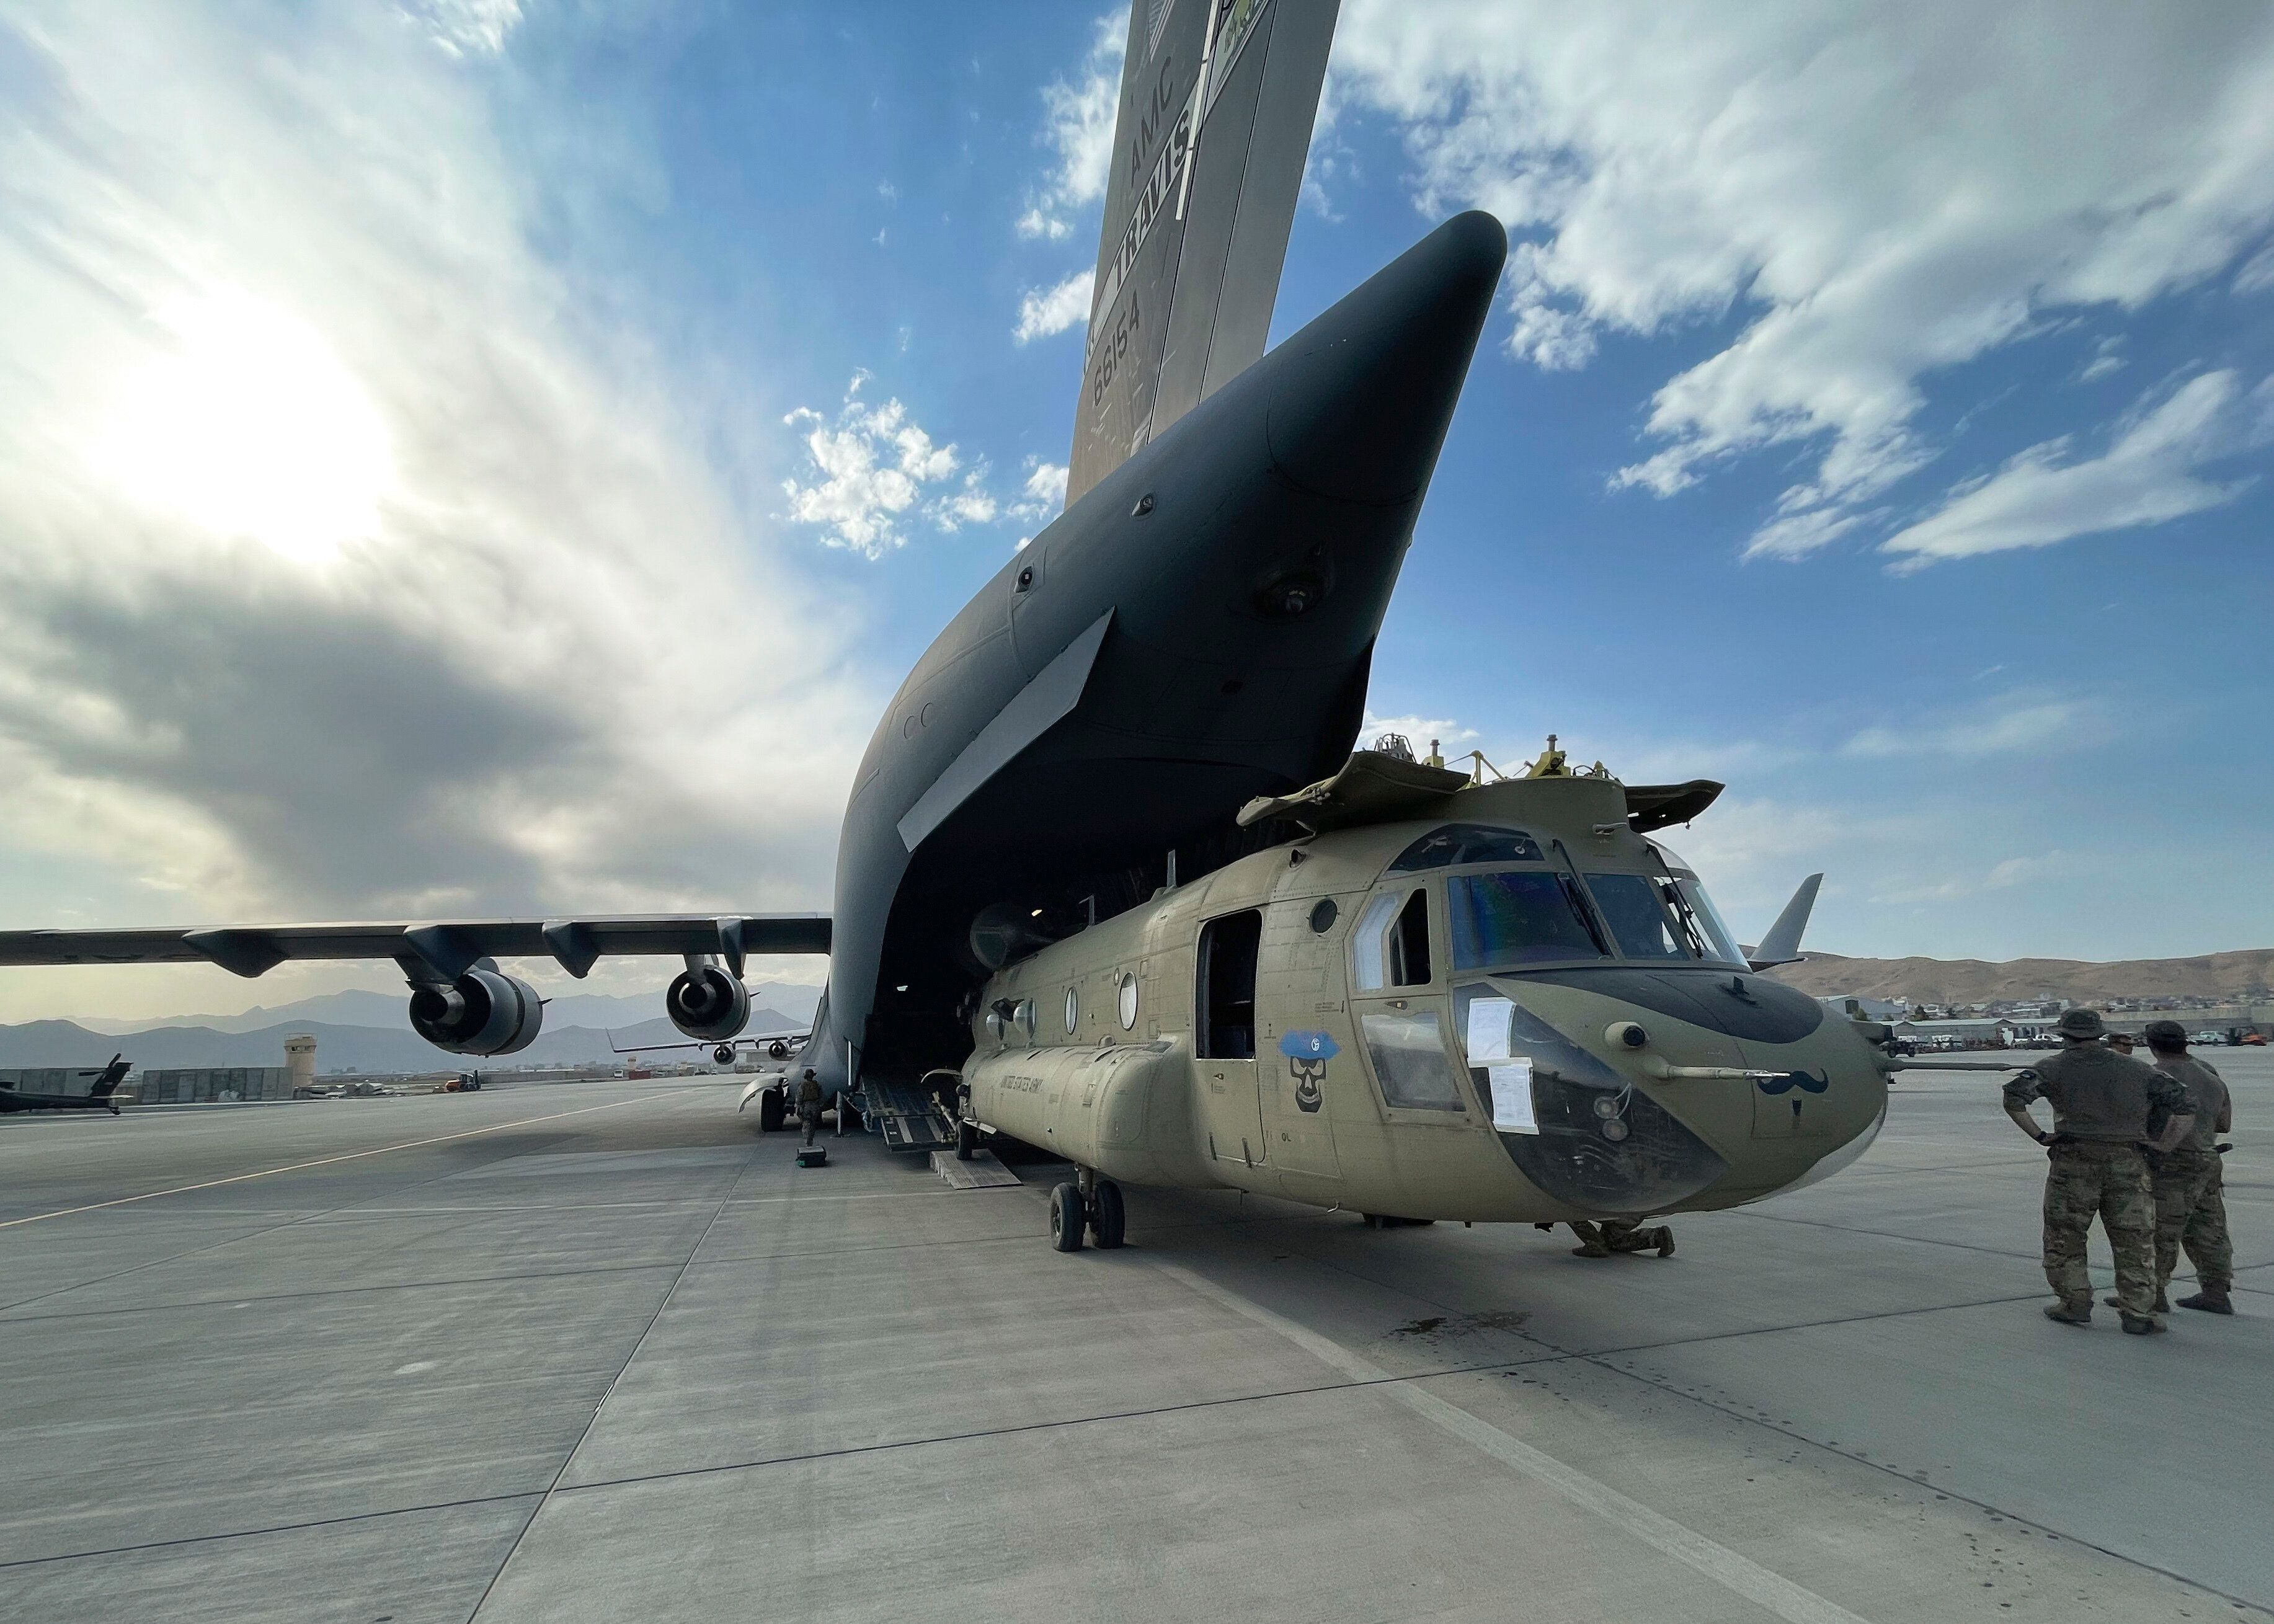 A CH-47 Chinook from the 82nd Combat Aviation Brigade, 82nd Airborne Division is loaded onto a U.S. Air Force C-17 Globemaste